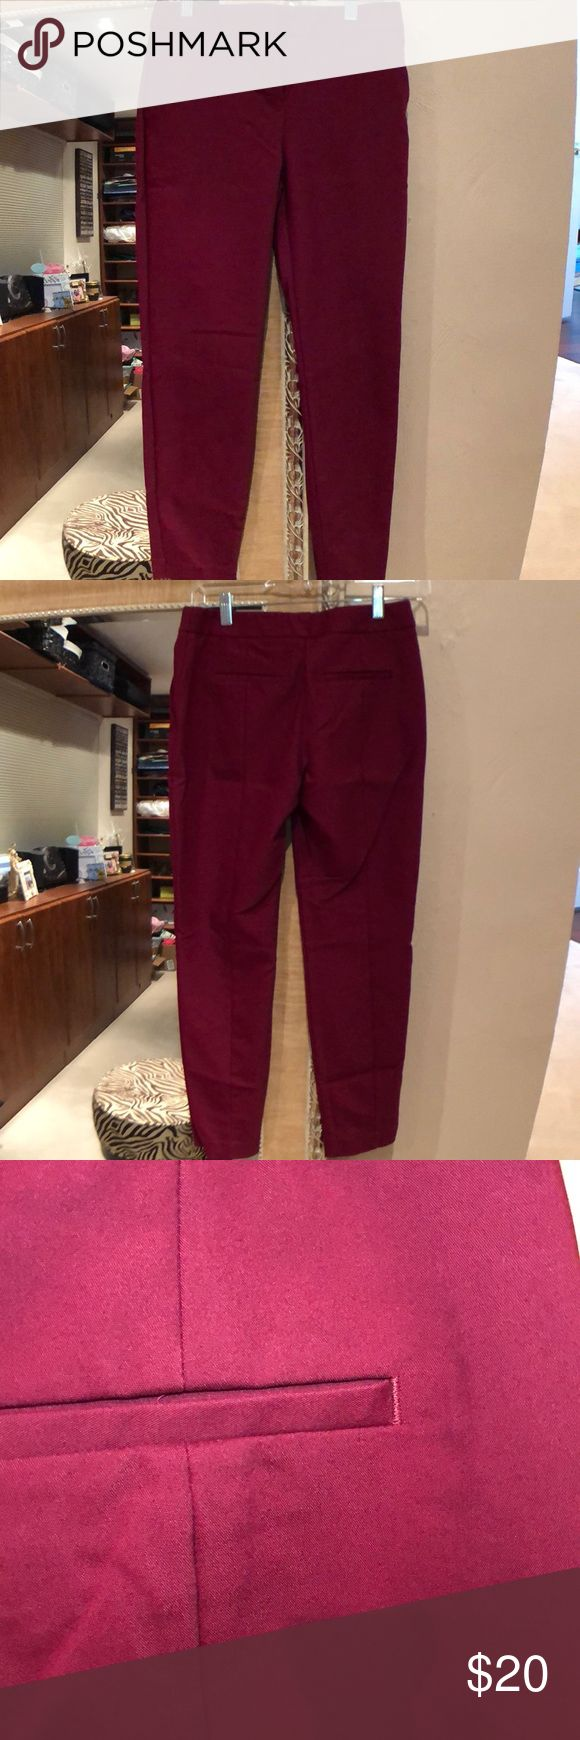 Express Columnist Ankle Pant Burgundy colored Express Columnist Ankle Pant in size 00R. Excellent Used Condition. Super cute pants. I just don't fit them anymore. Express Pants Ankle & Cropped